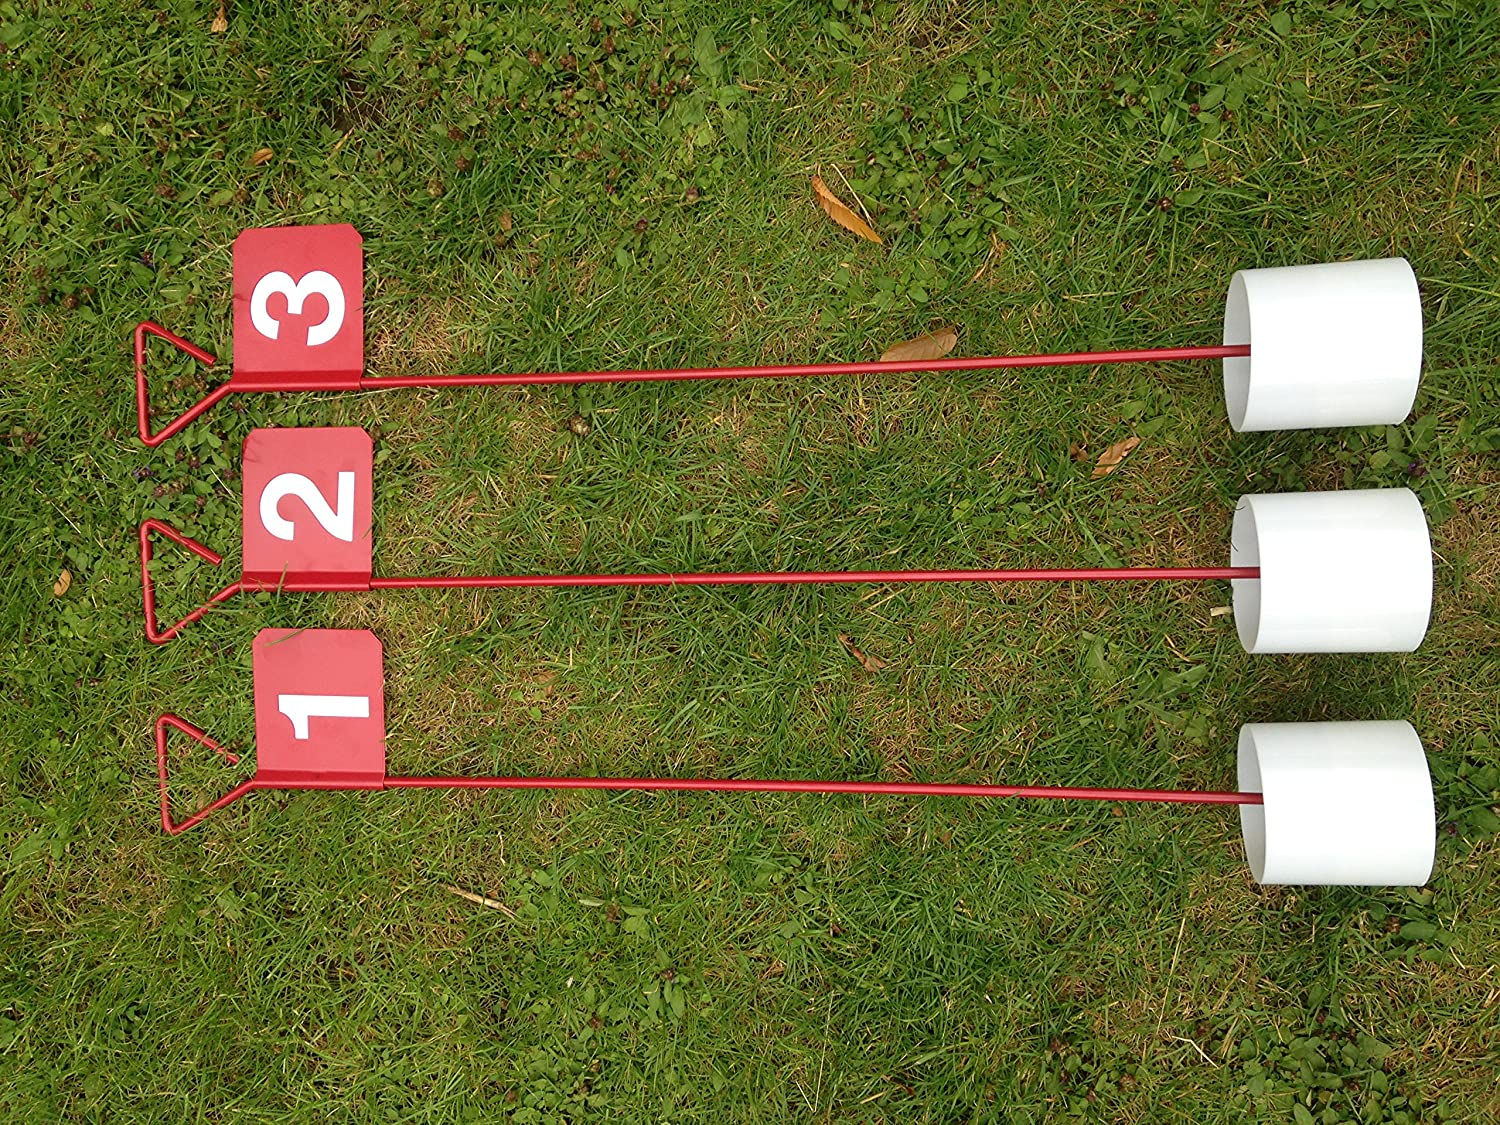 3 x numbered metal professional jl golf putting green flag and